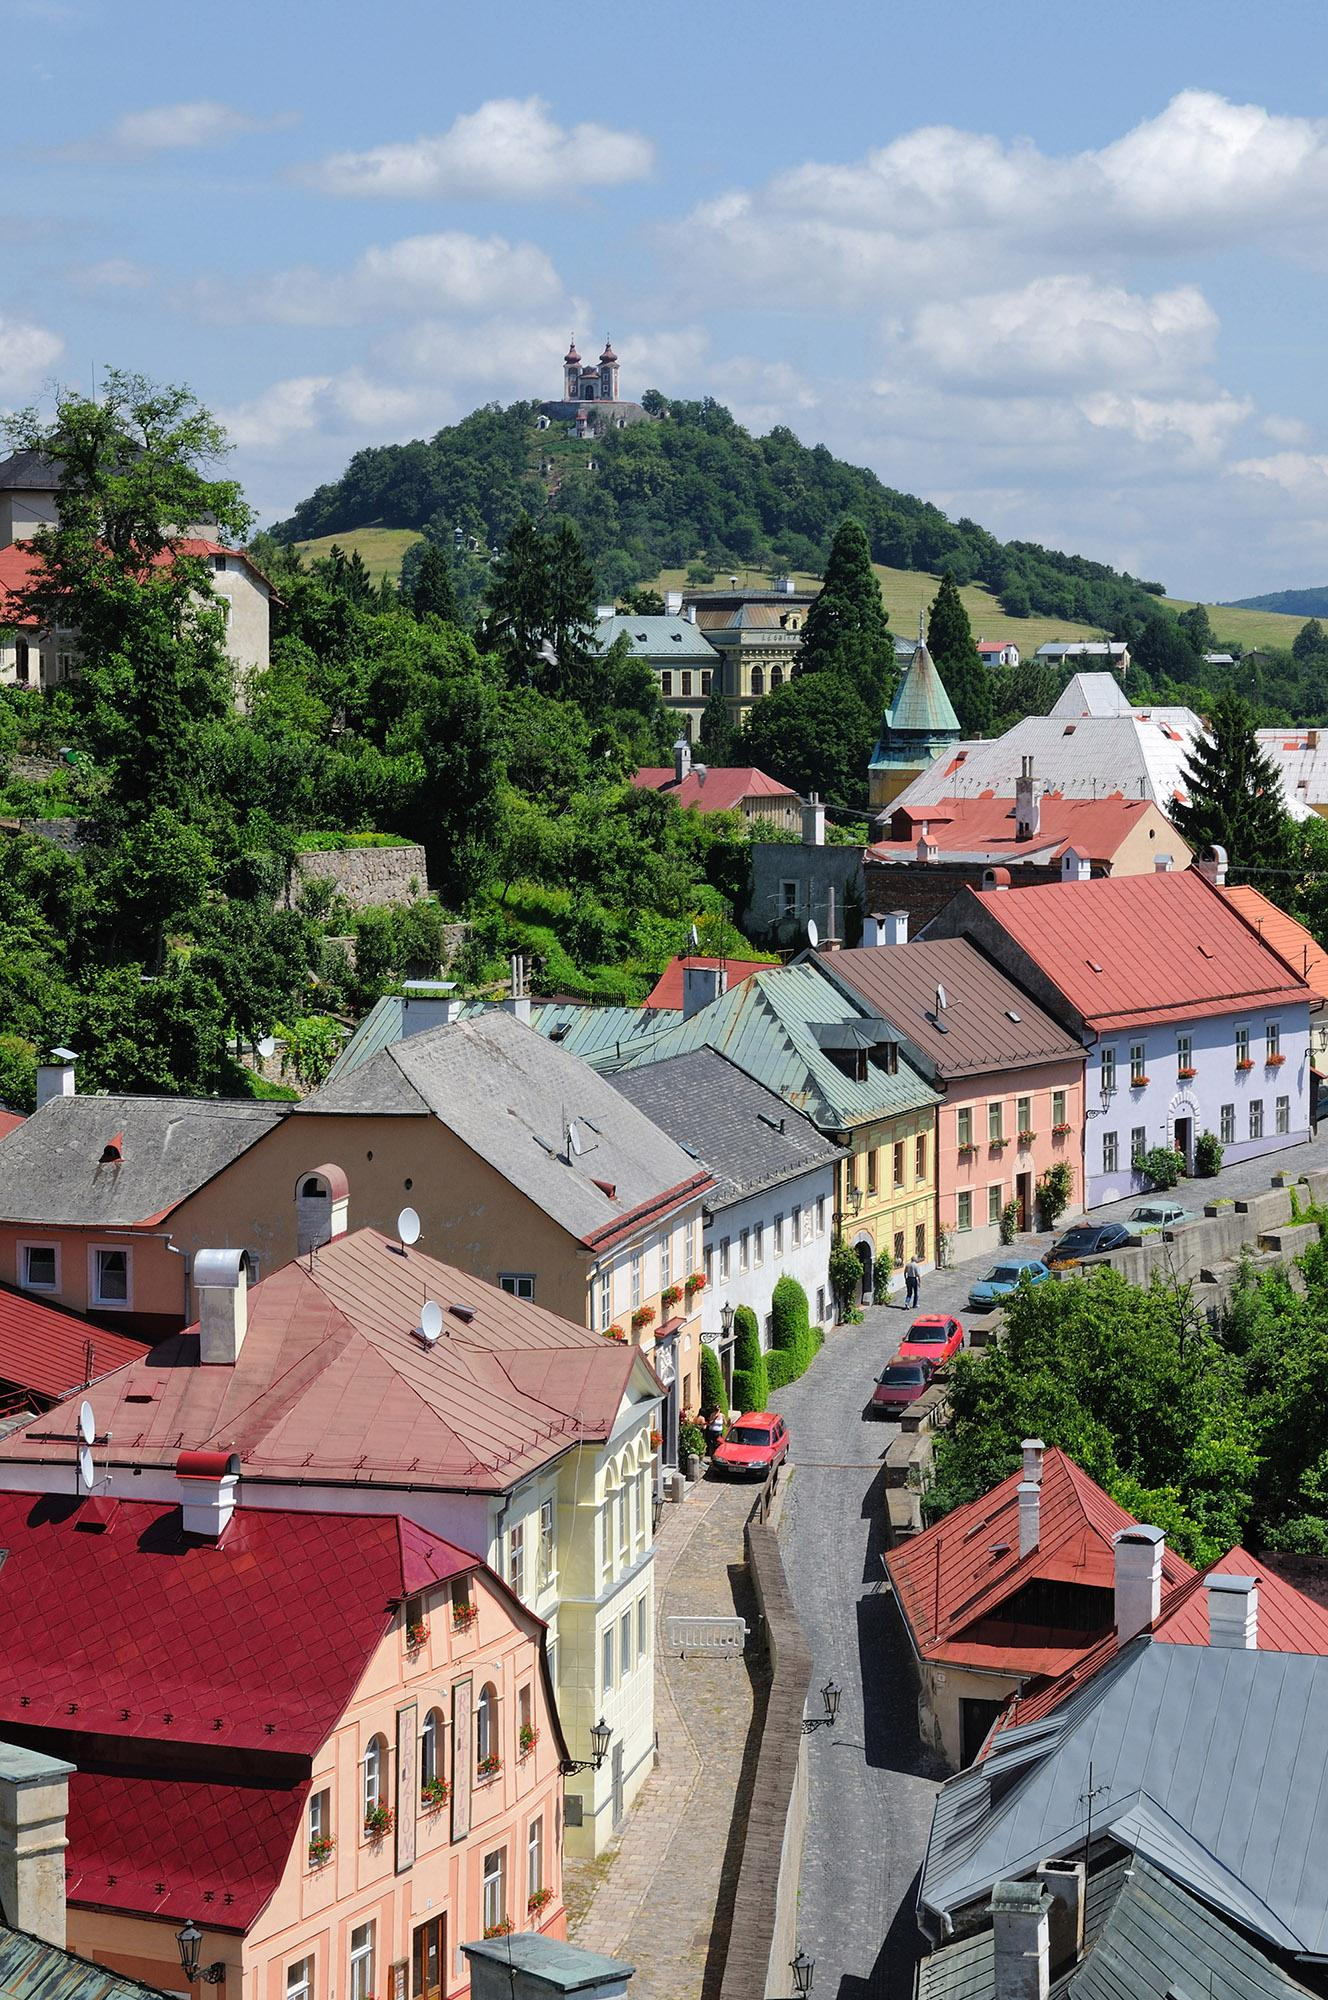 Travellers are as intrigued by the historical town of Banská Štiavnica as they are the mines. Dolná Ružová Street is one of its most beautiful avenues. – © Maran Garai / Shutterstock